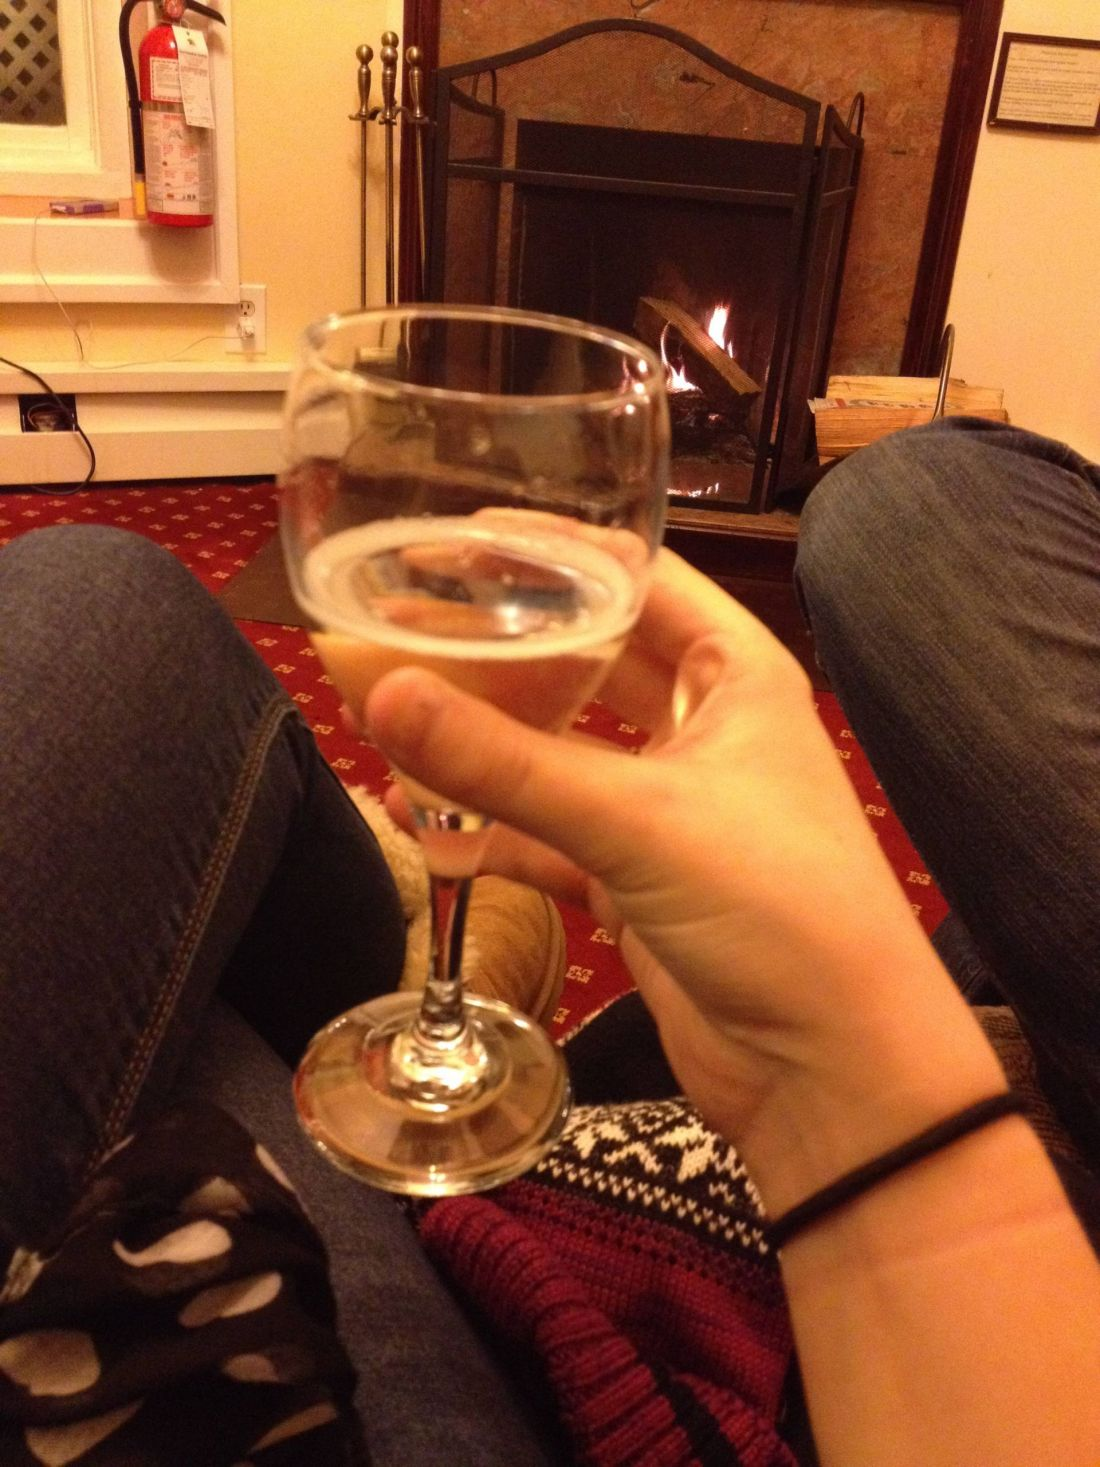 Bubbles by the fire